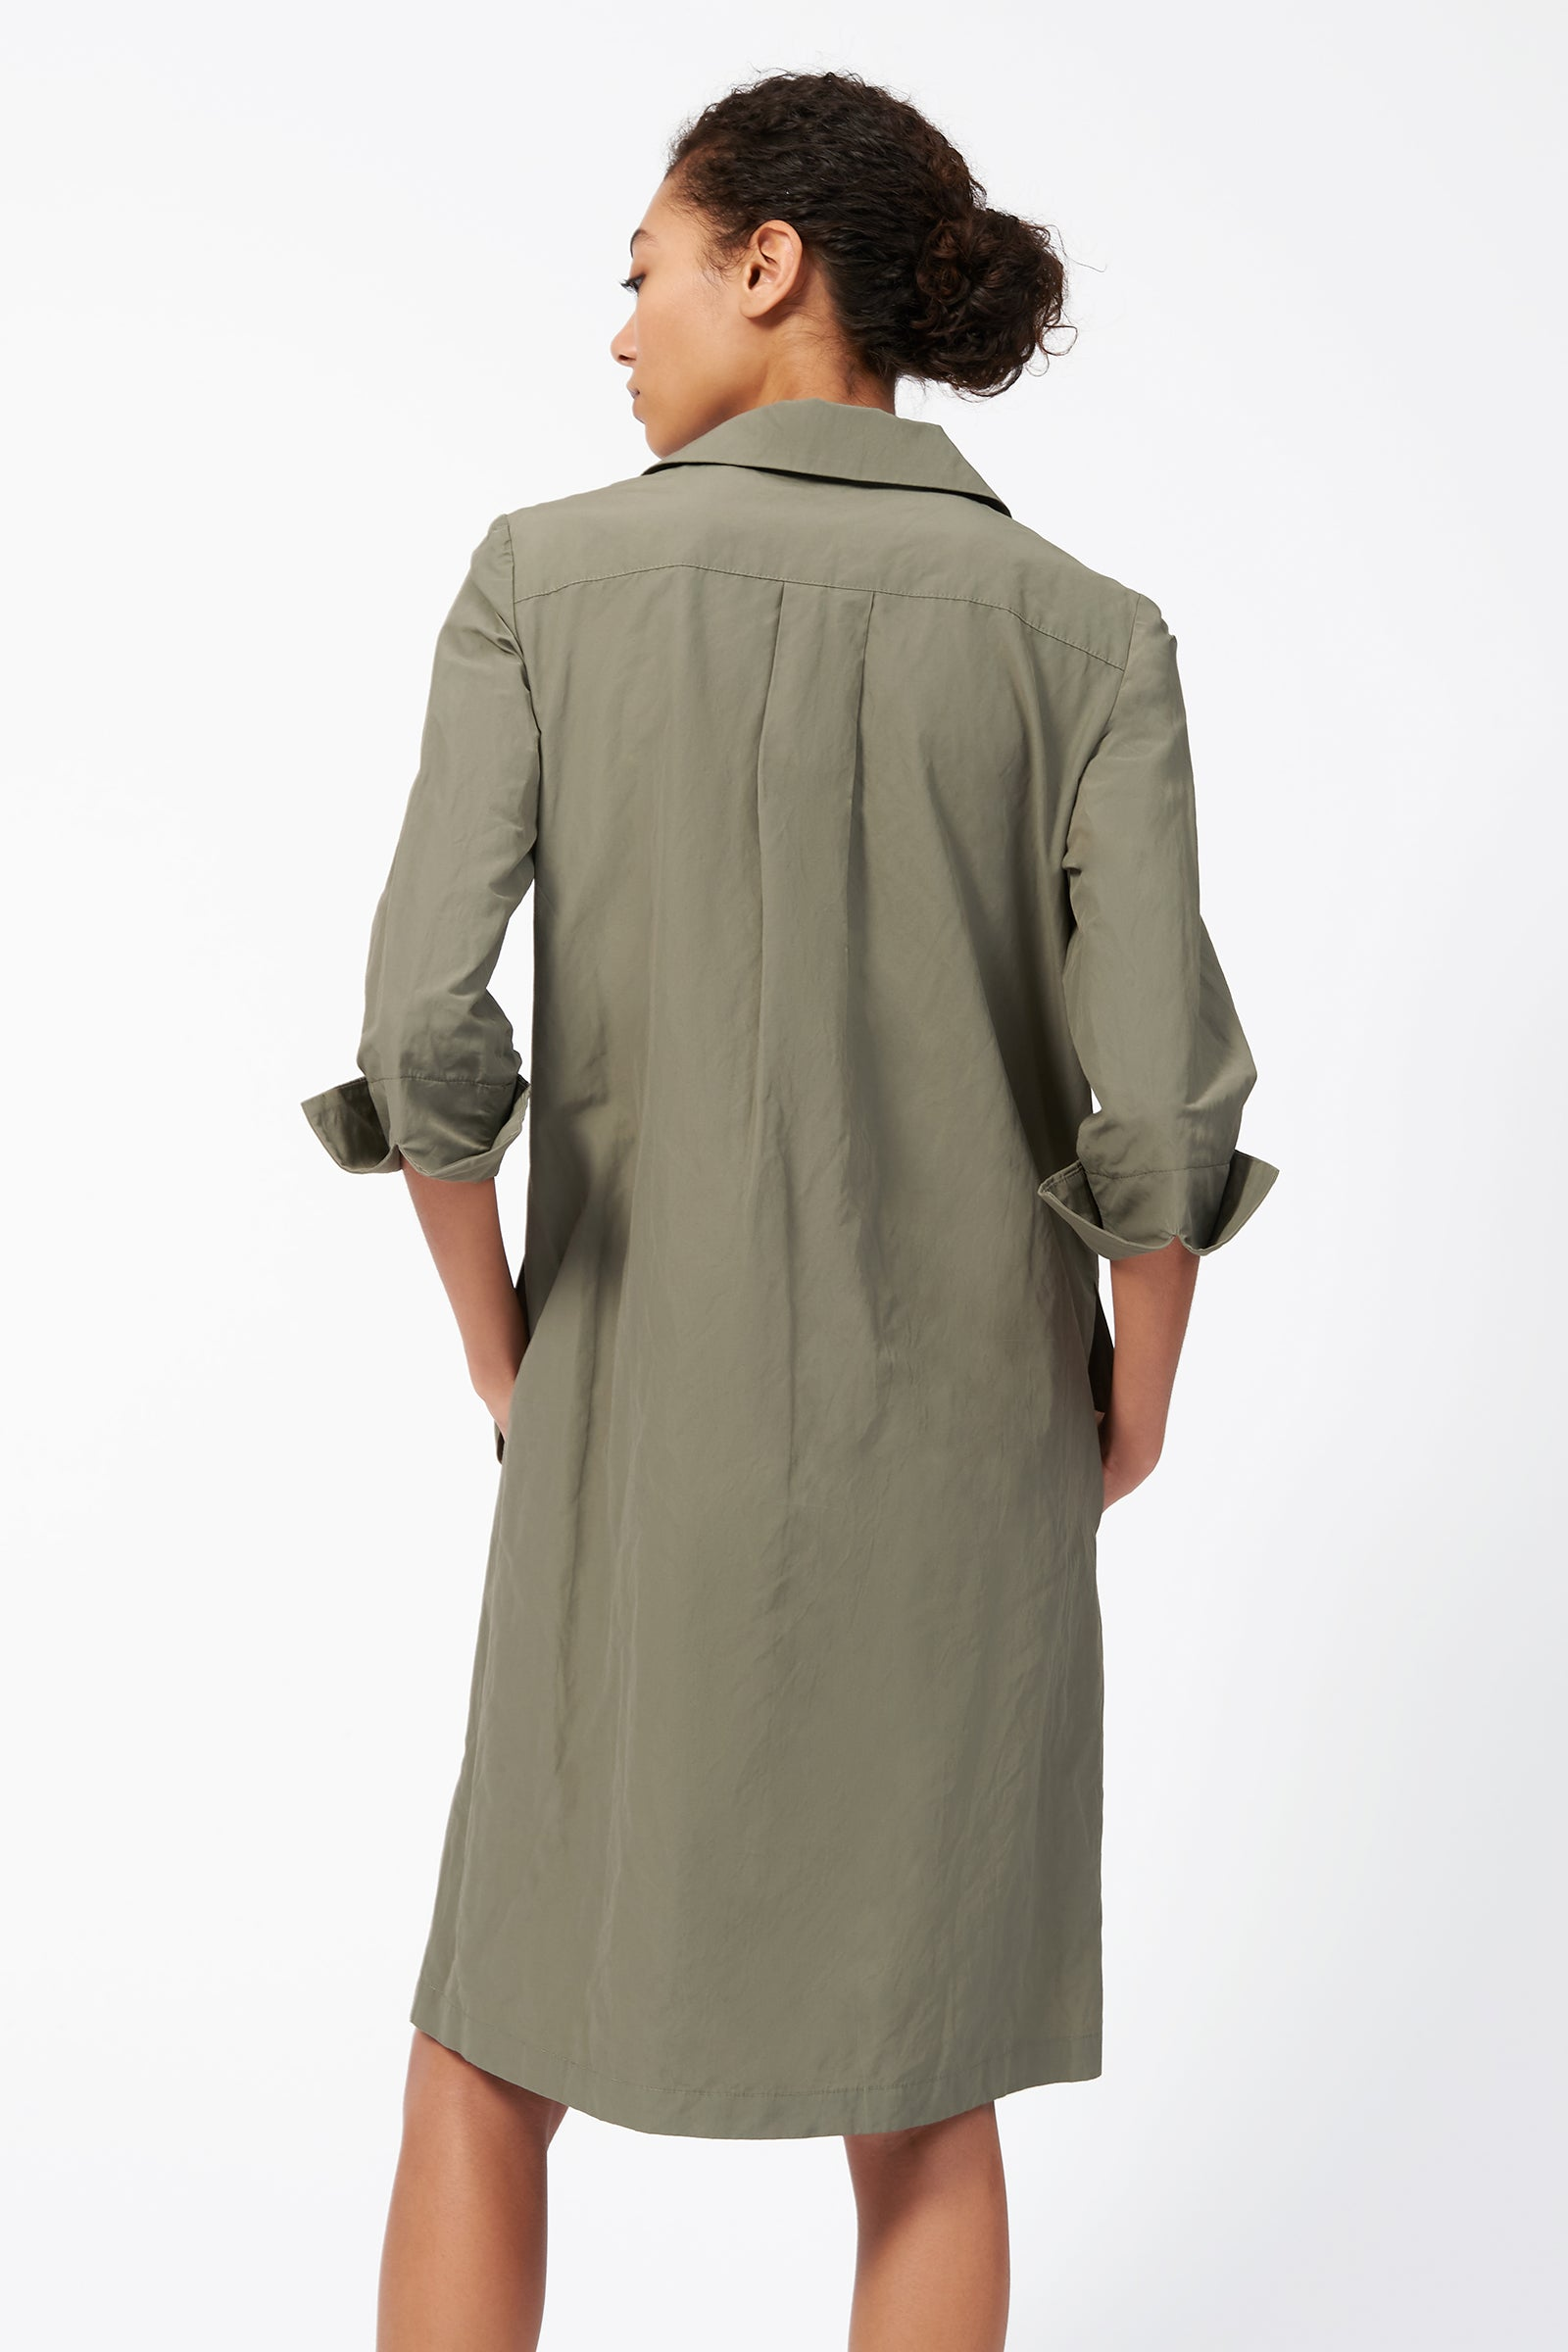 Kal Rieman Collared V Neck Dress in Olive on Model Back View